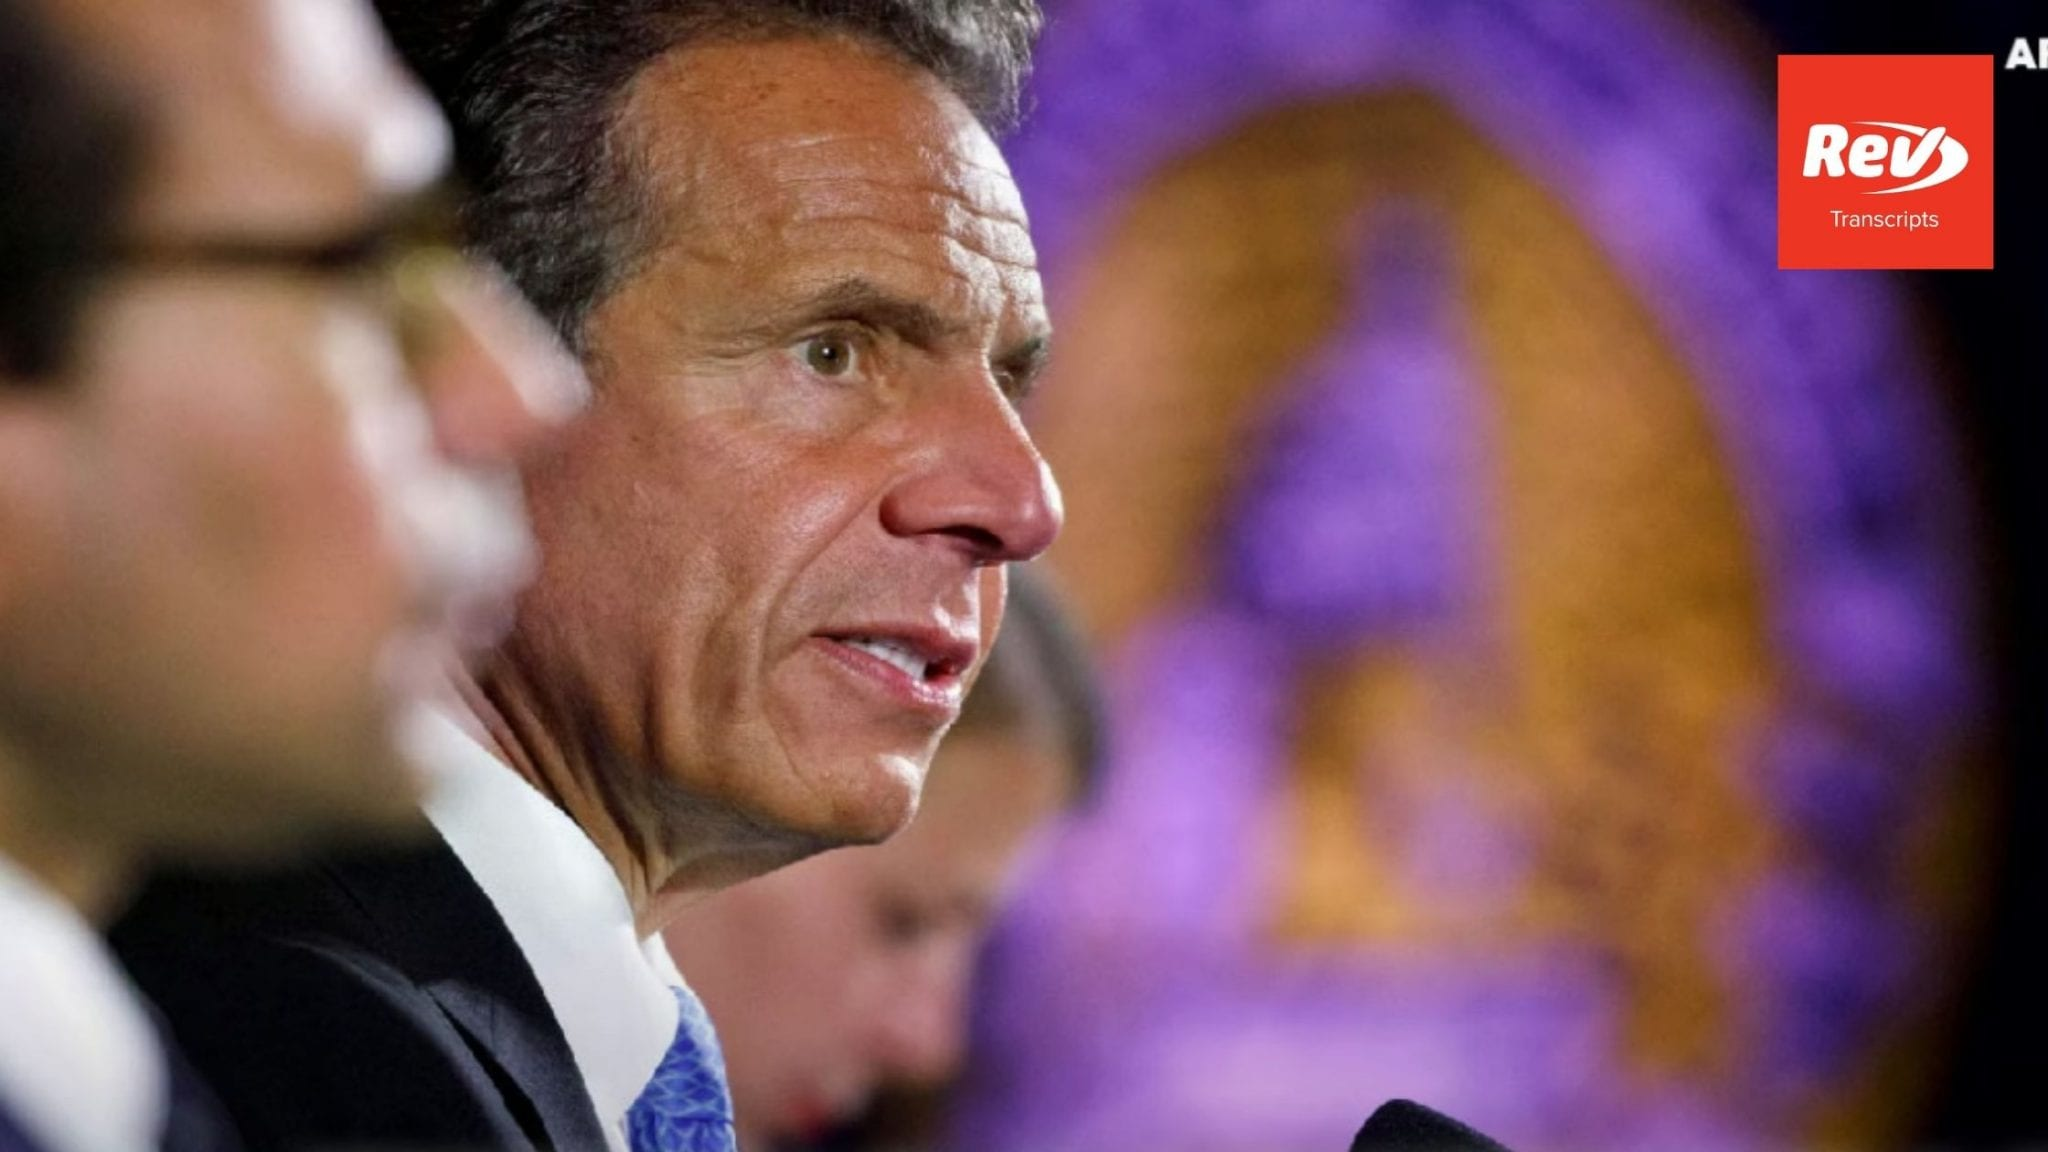 NY Gov. Andrew Cuomo Conference Call Transcript